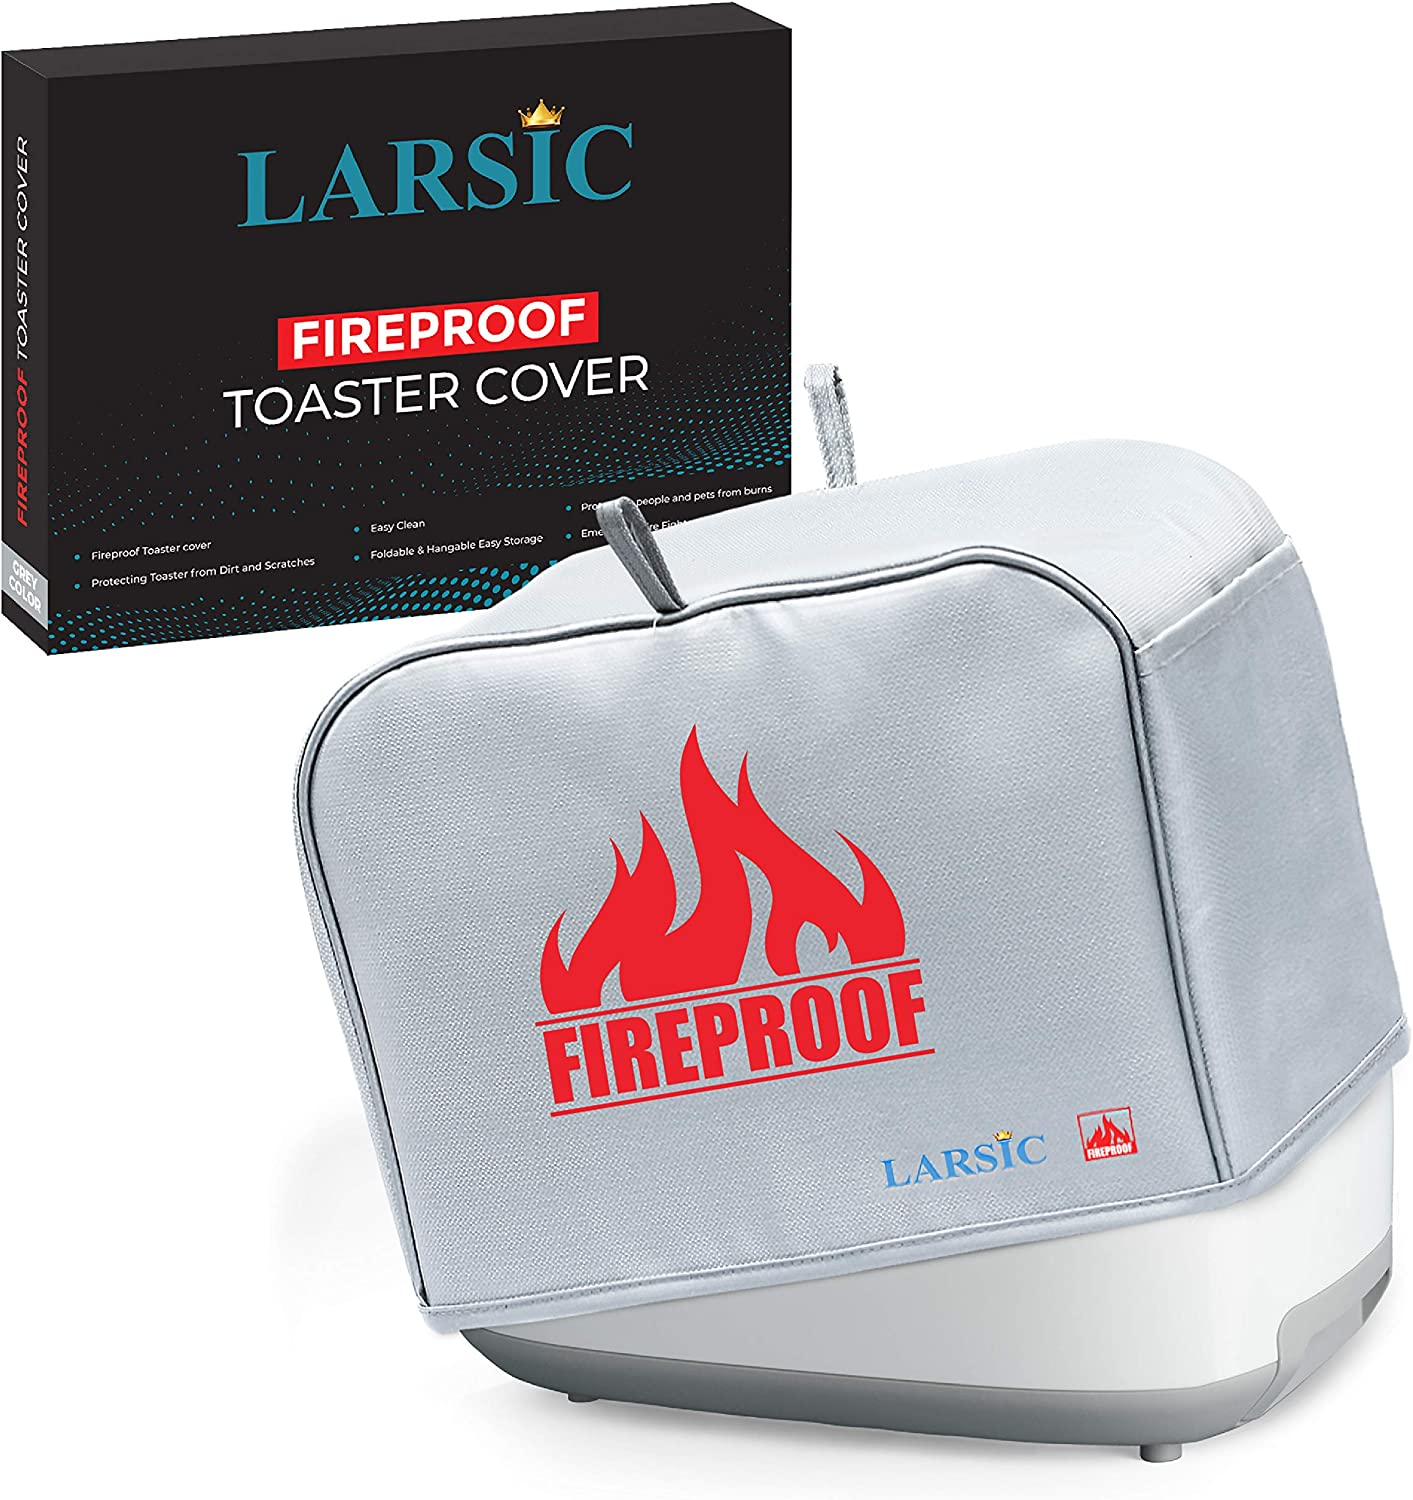 Larsic 2 Slice Toaster Cover Appliance Dust Cover Safeguards Against Dirt, Fingerprints and Burns – Washable, Fire Resistant to 2000 Degrees with Pockets, Hanging Eyelets and Hooks (12x8.5x8